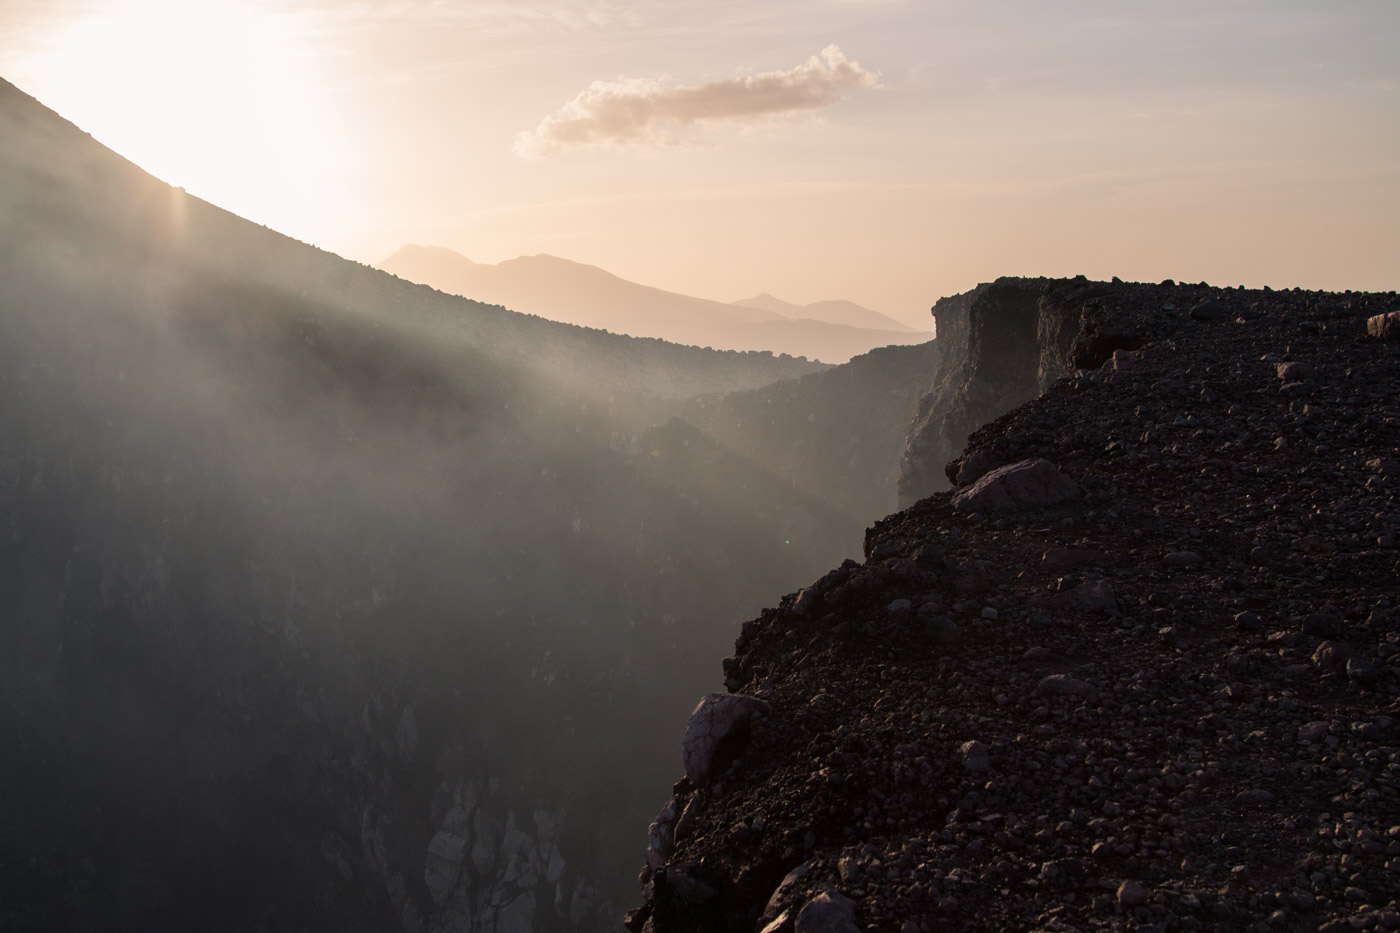 On the edge of the crater